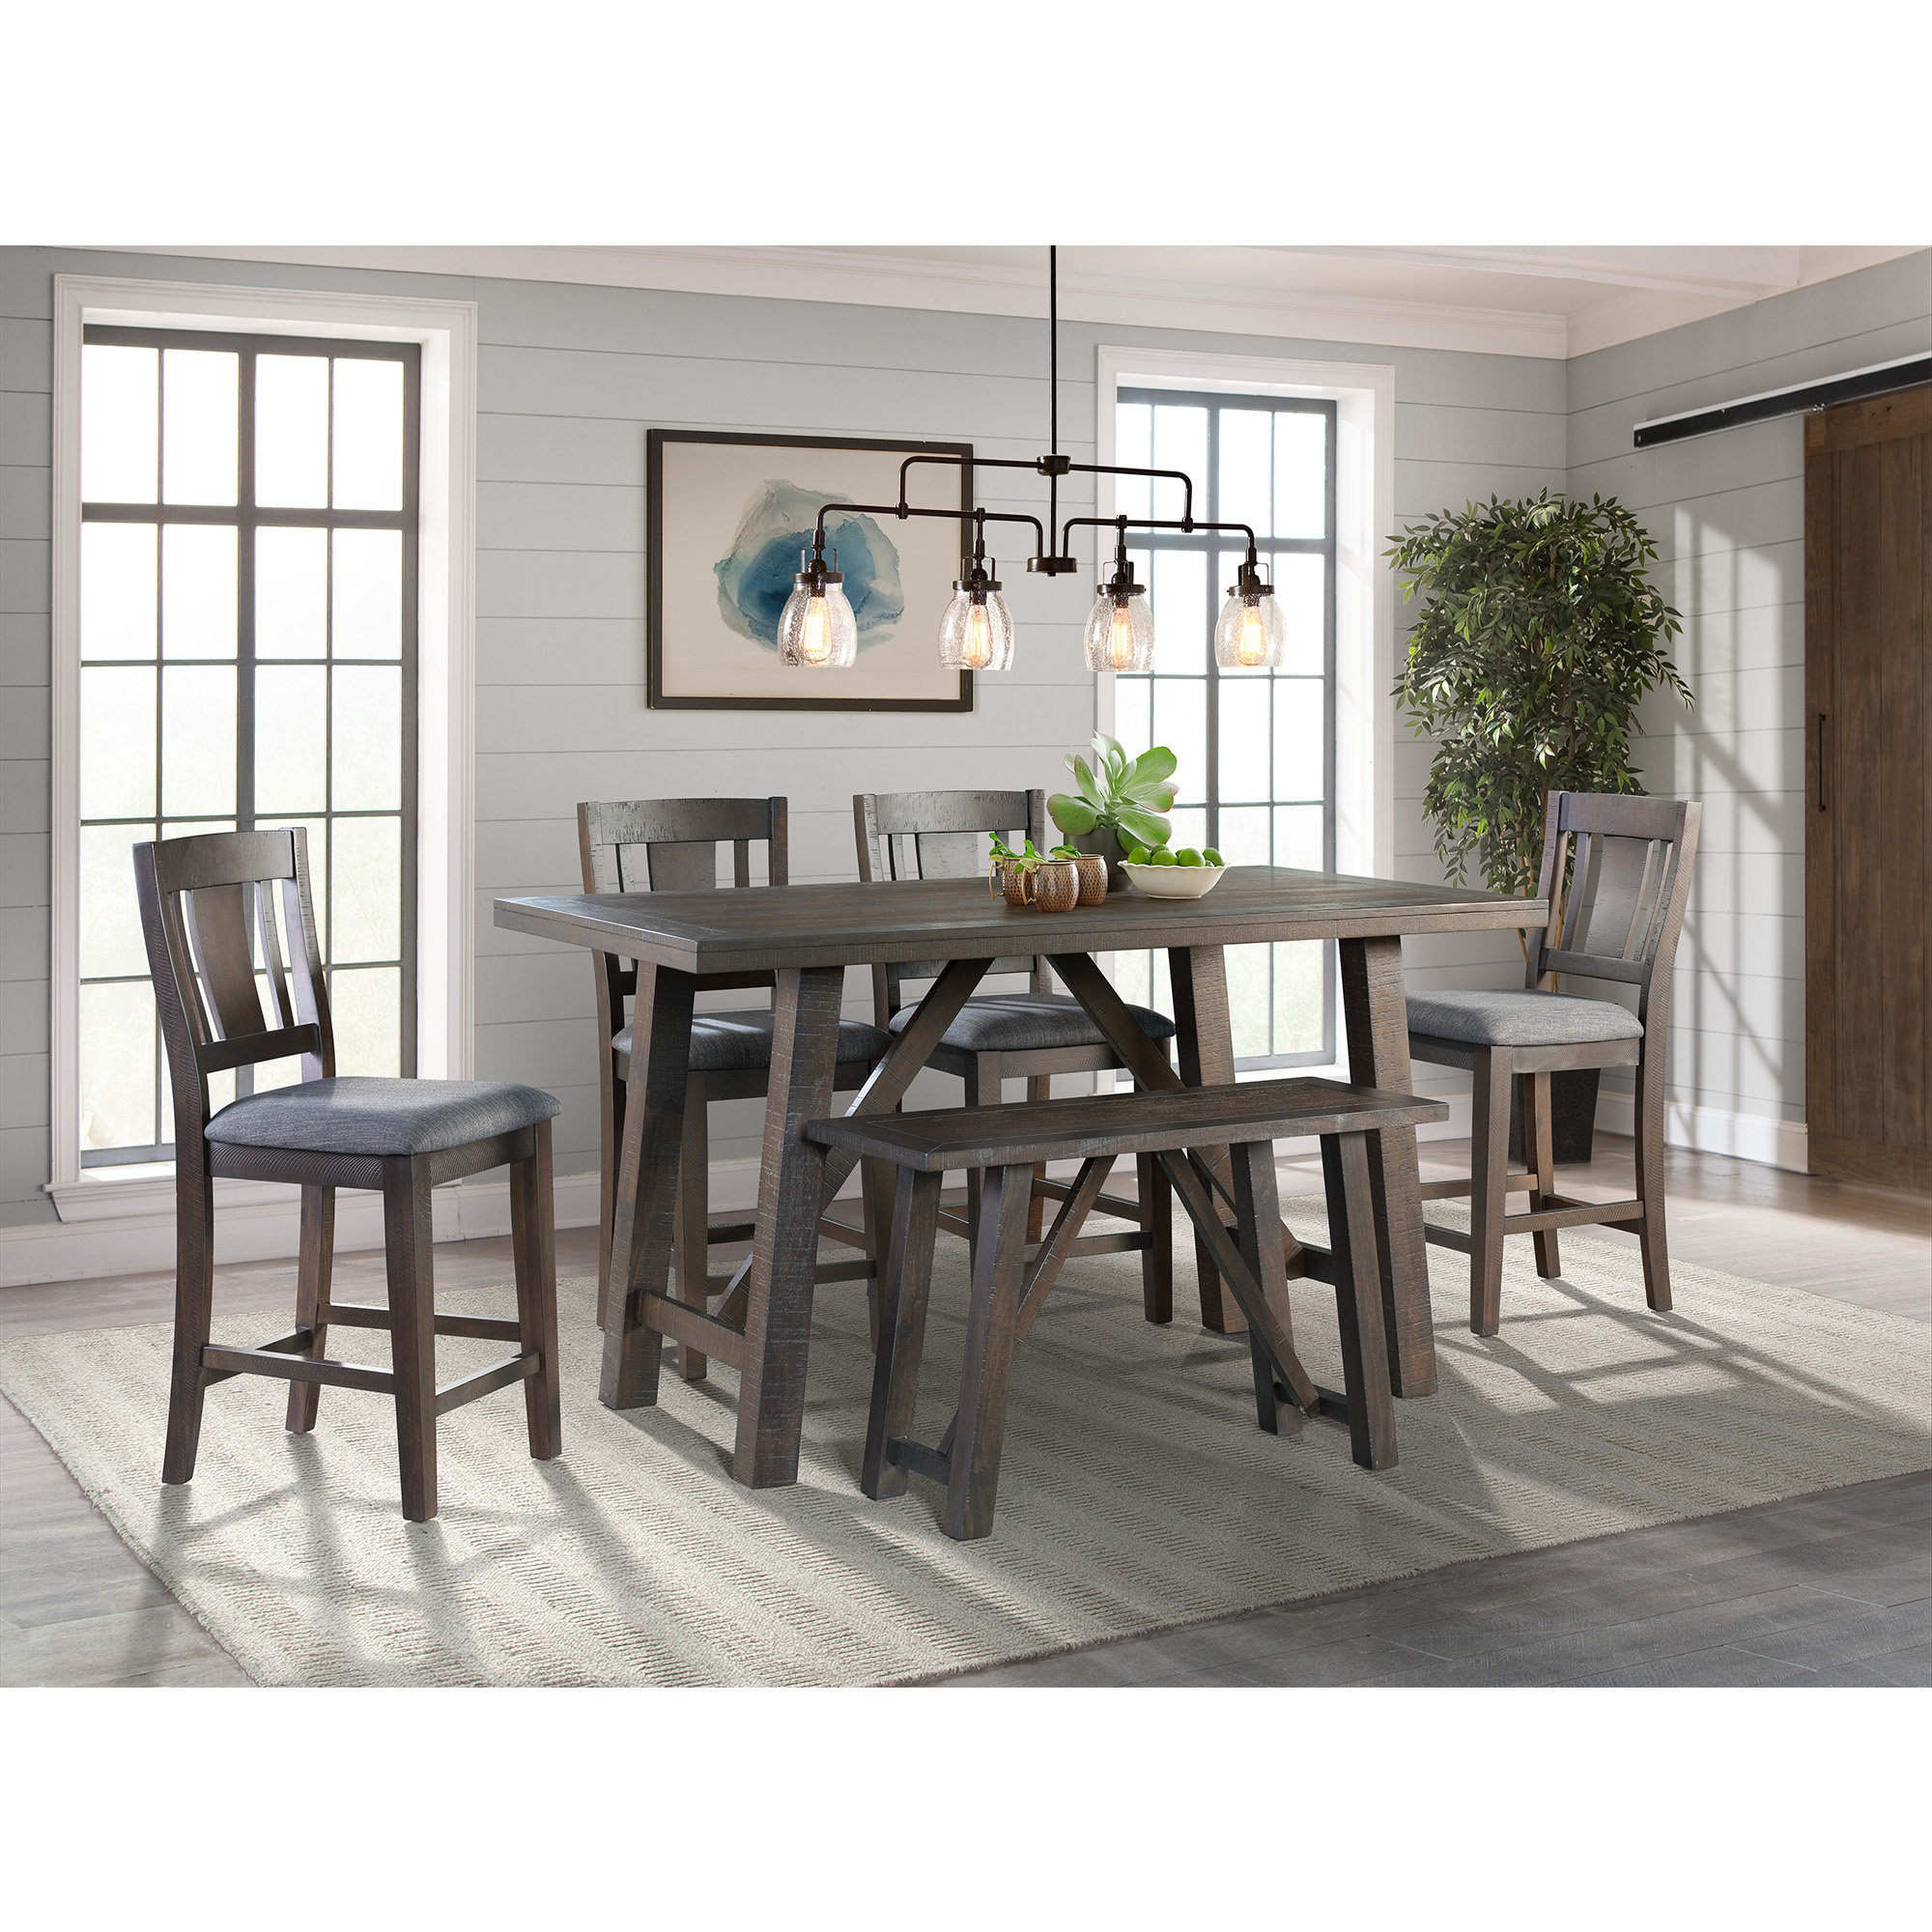 Sorrentino 6 Piece Pub Table Set Regarding Recent Hanska Wooden 5 Piece Counter Height Dining Table Sets (Set Of 5) (View 5 of 20)